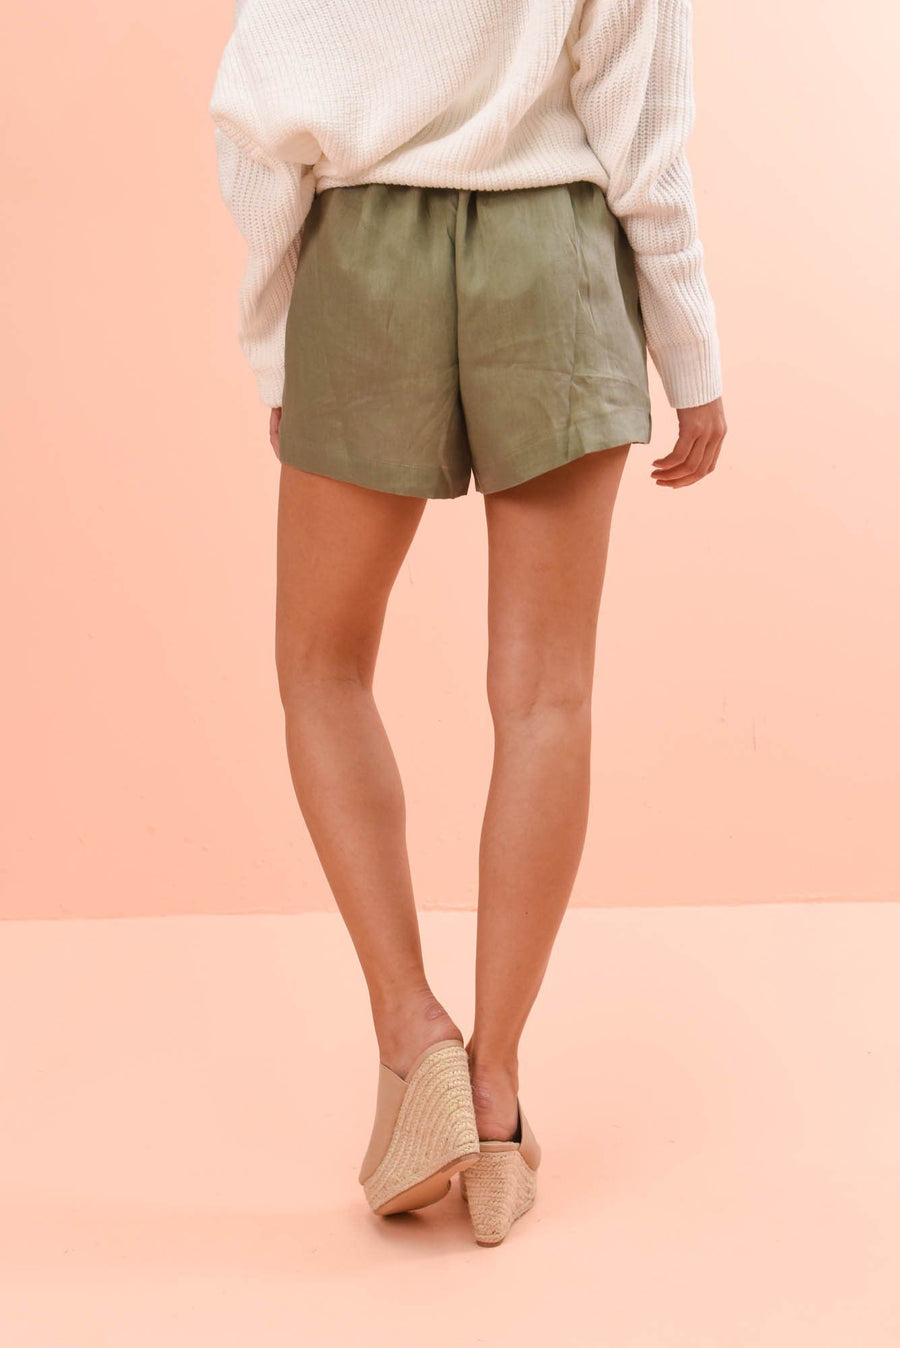 Bodhi Shorts Bottoms The Lust Label